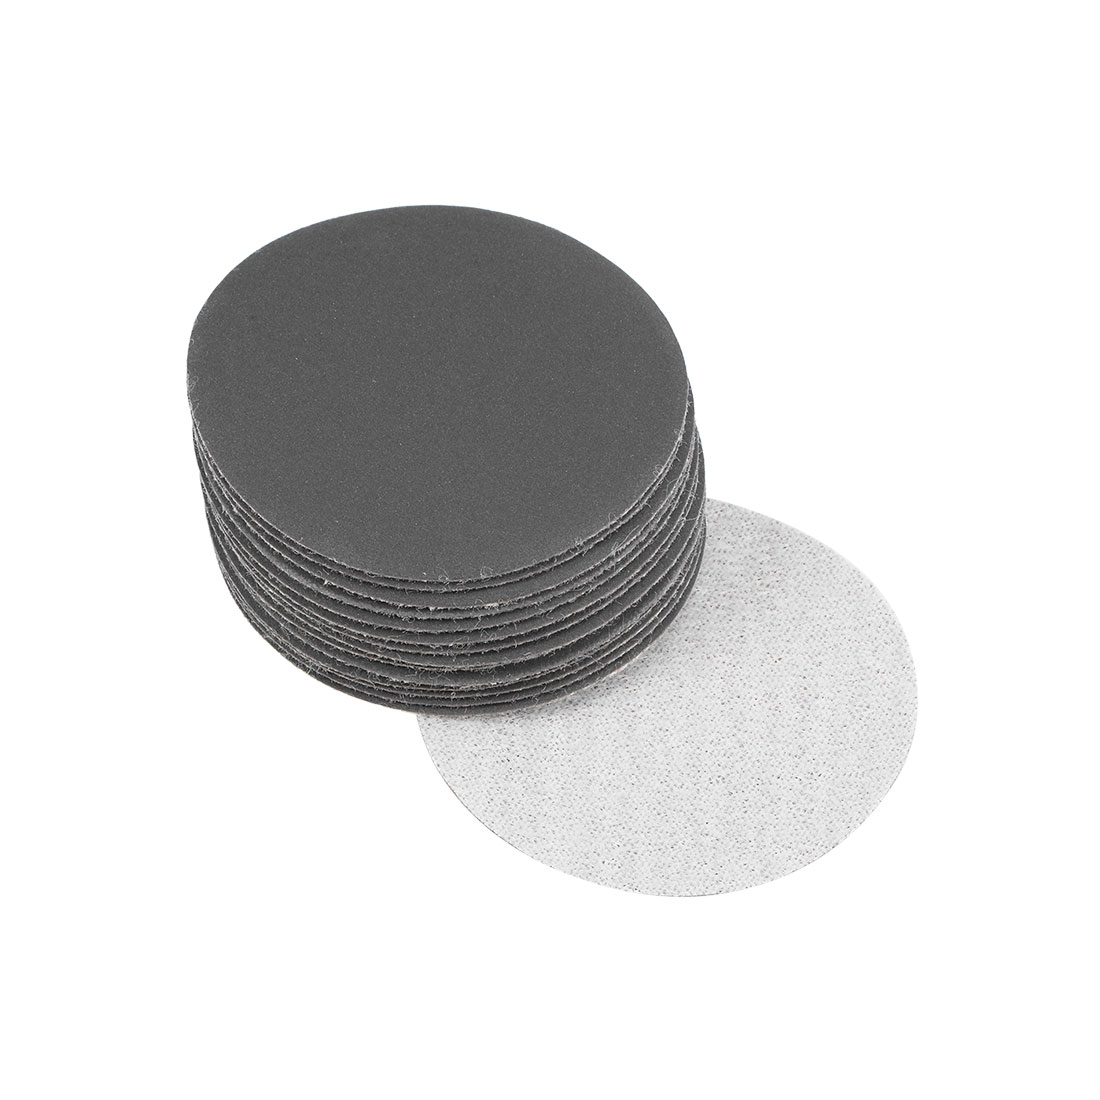 2 inch Wet Dry Discs 800 Grit Hook and Loop Sanding Disc Silicon Carbide 15pcs